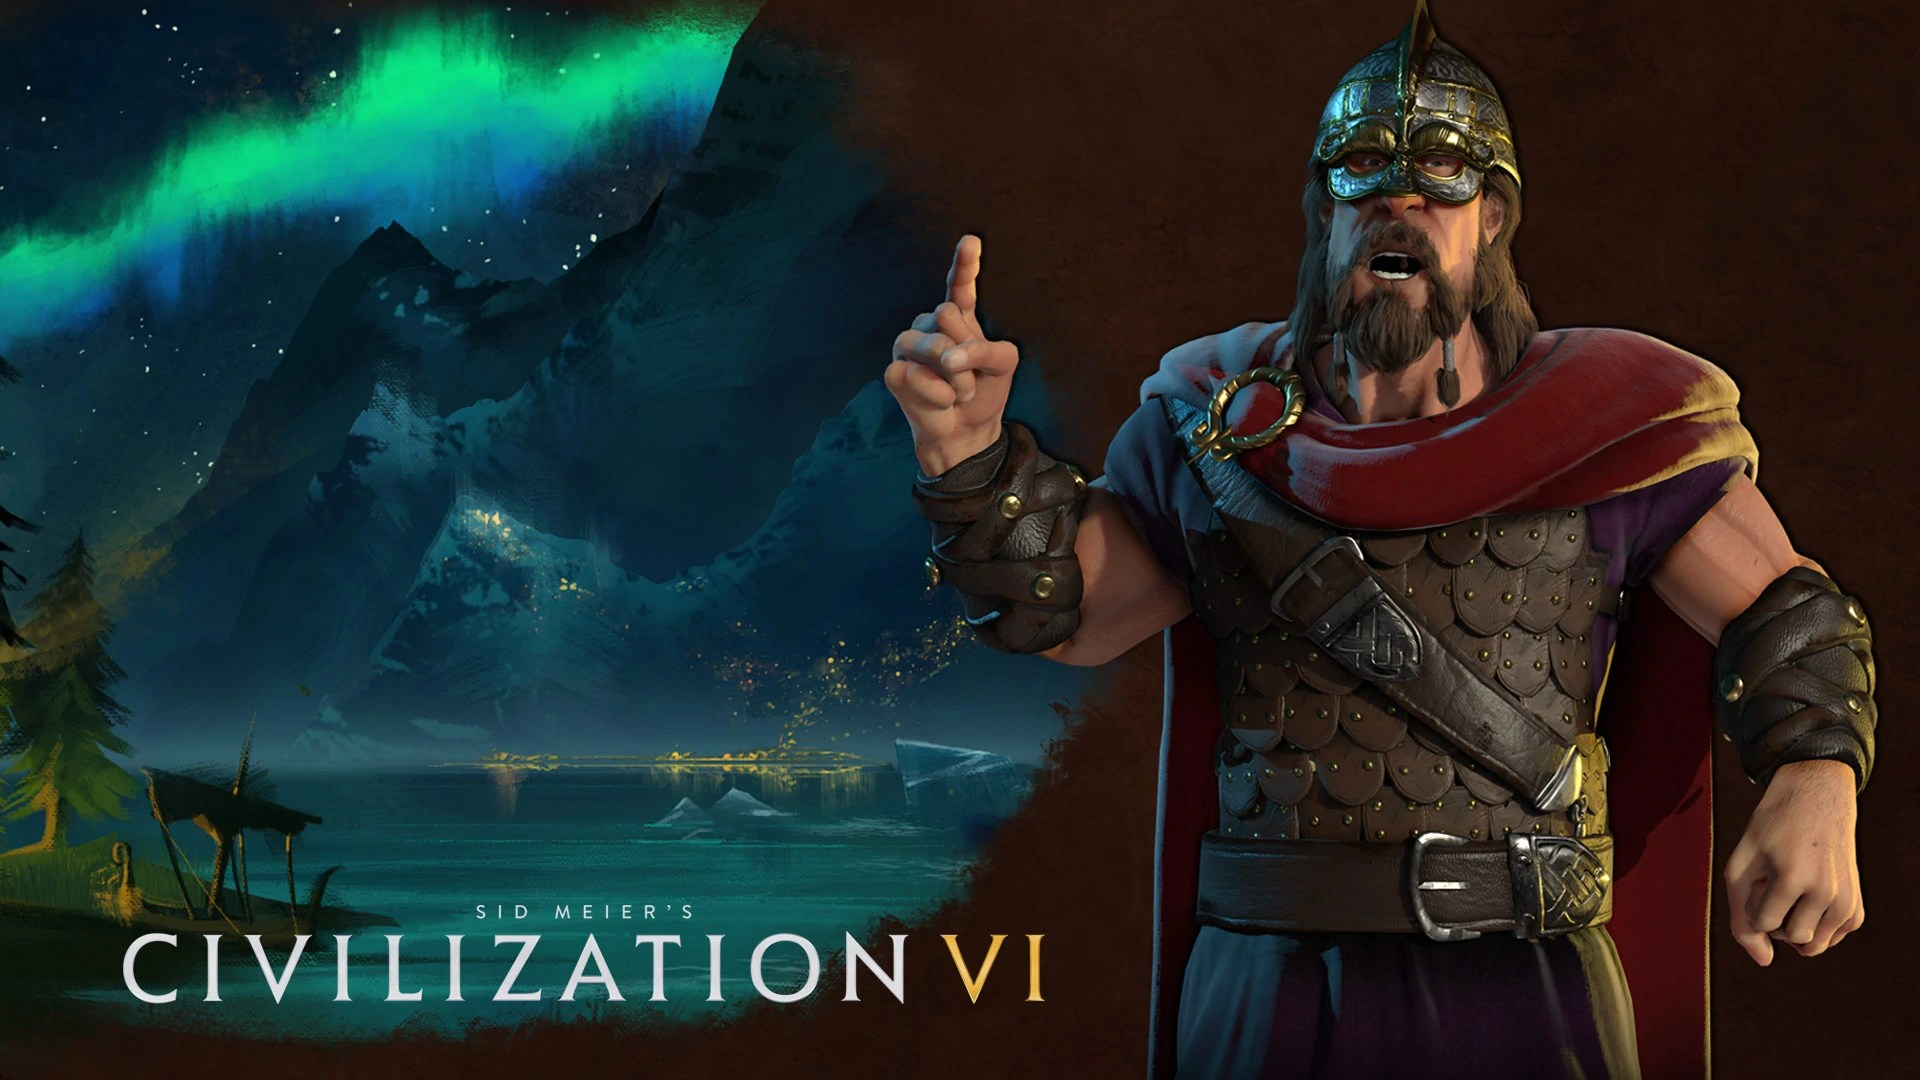 Leaders Civilization 6 Mods - Year of Clean Water